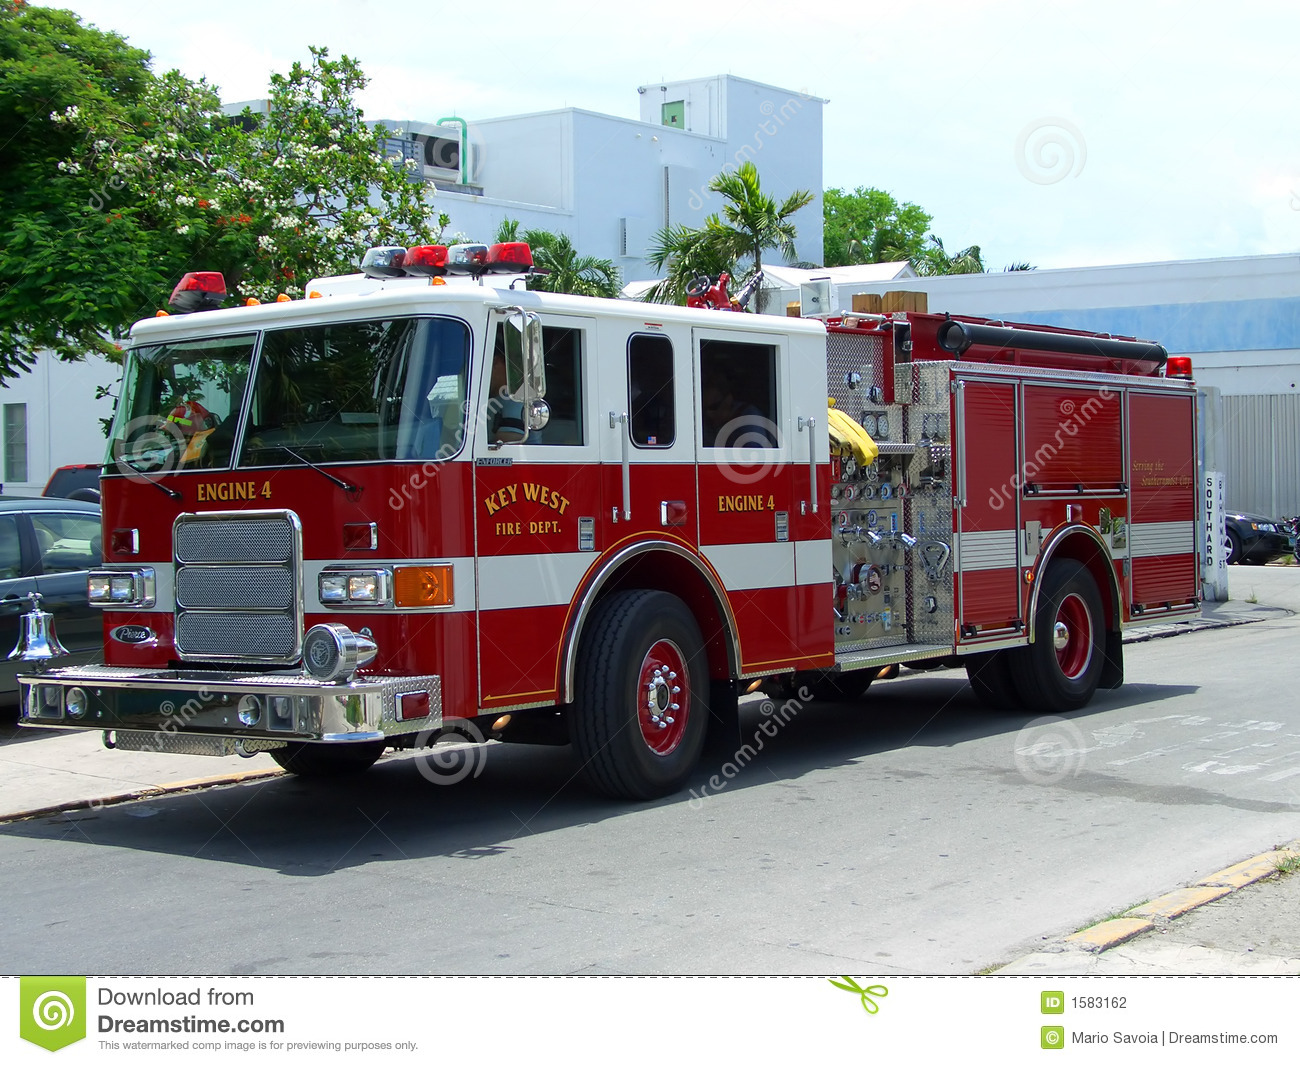 Key West Fire Brigade Truck Stock Photography - Image: 1583162